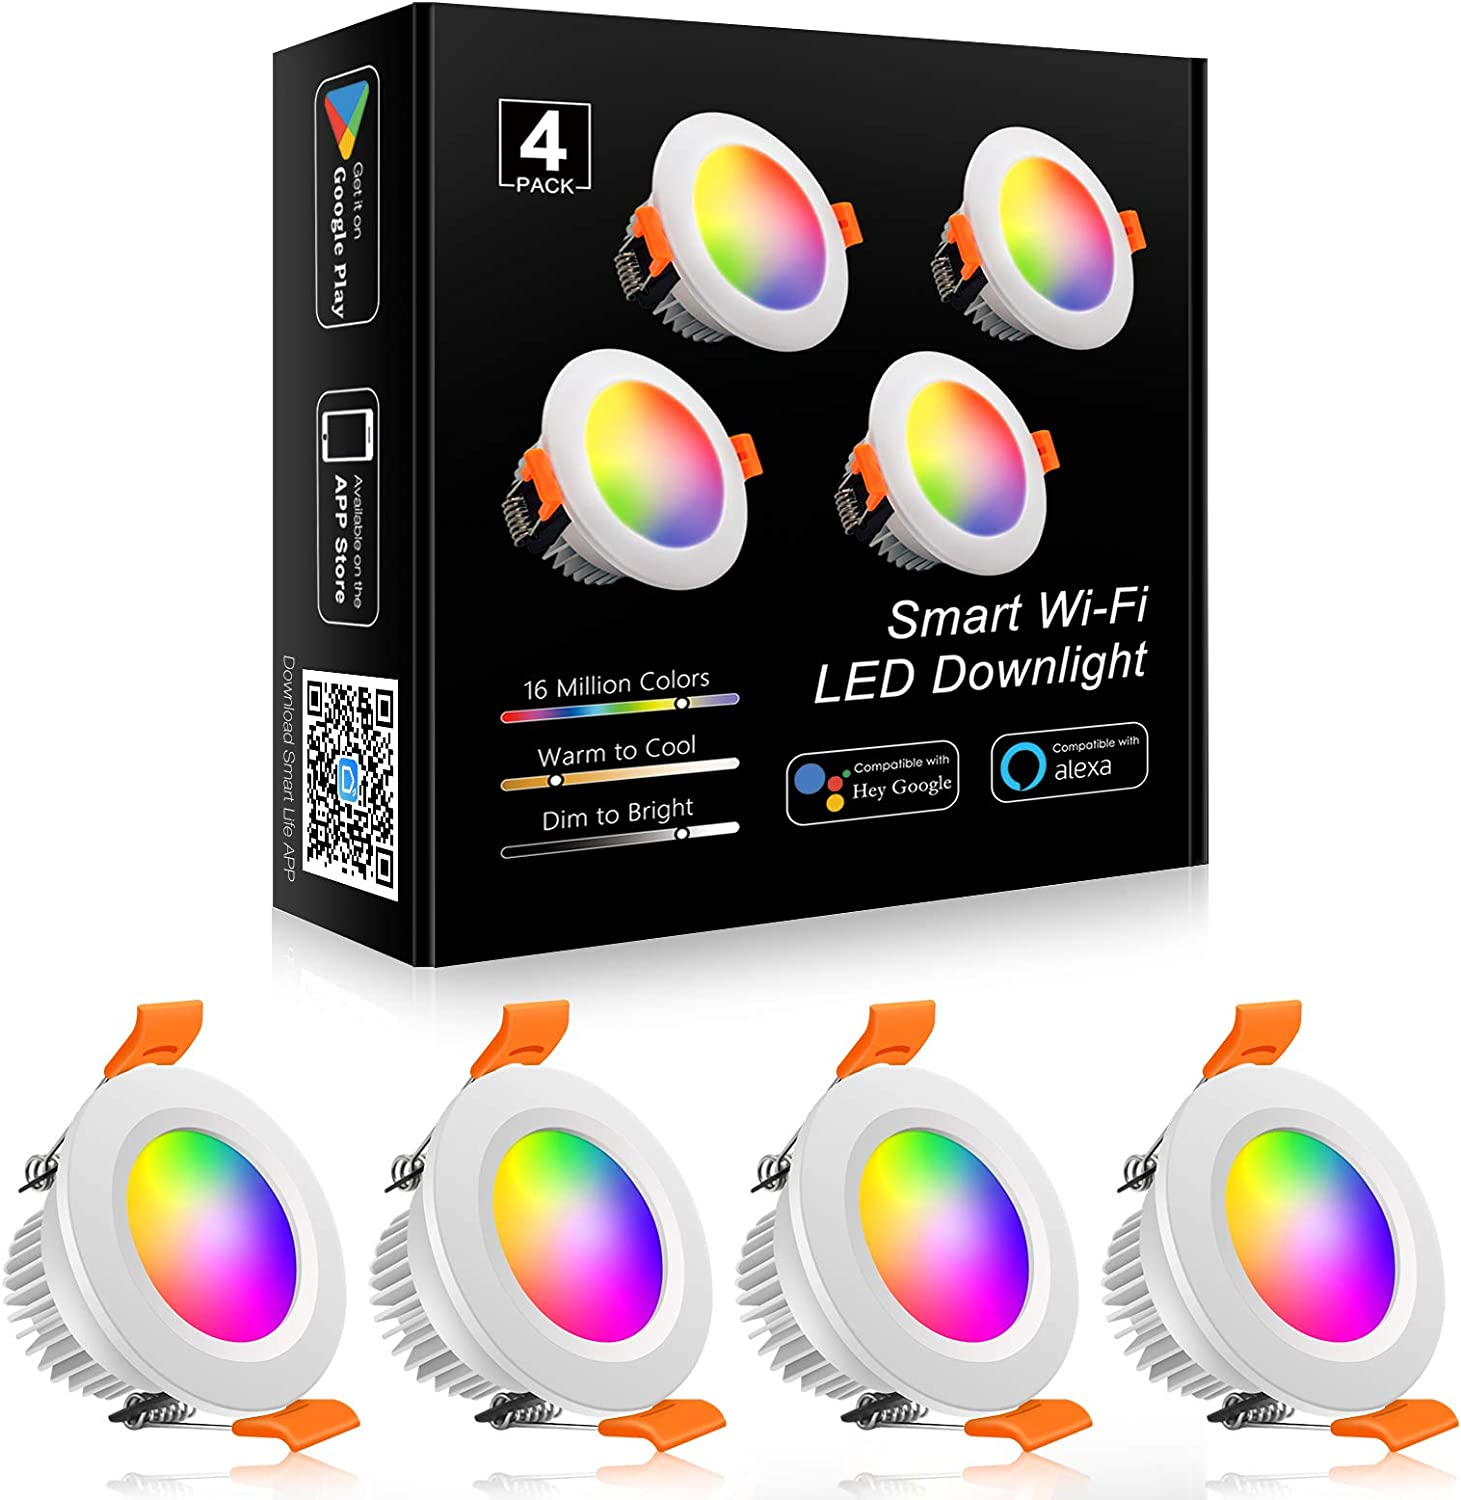 YGS-Tech WiFi Smart 2 Inch LED Recessed Lighting RGB Downlight, 5W Compatible with Alexa and Google Home, Dimmable RGB & CCT 2700-6500K Color Changing, 120V LED Ceiling Light with LED Driver (4 Pack)